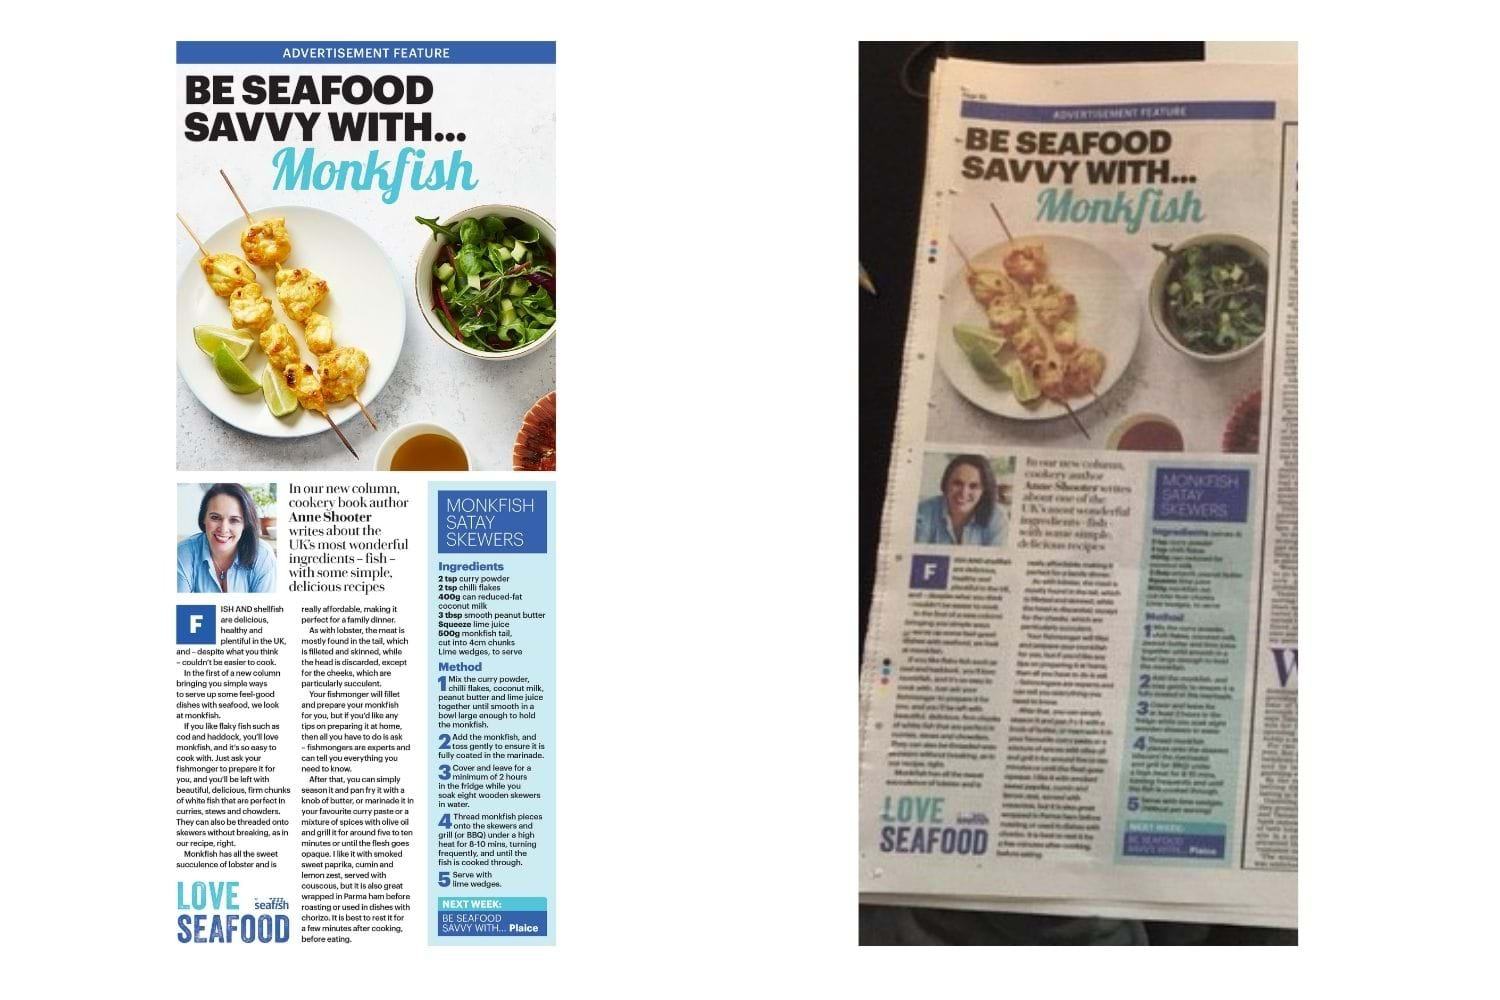 Screen shot of a Daily Mail article from the Love Seafood campaign titled 'Be seafood savvy with... monkfish' and a photo of the article in the paper